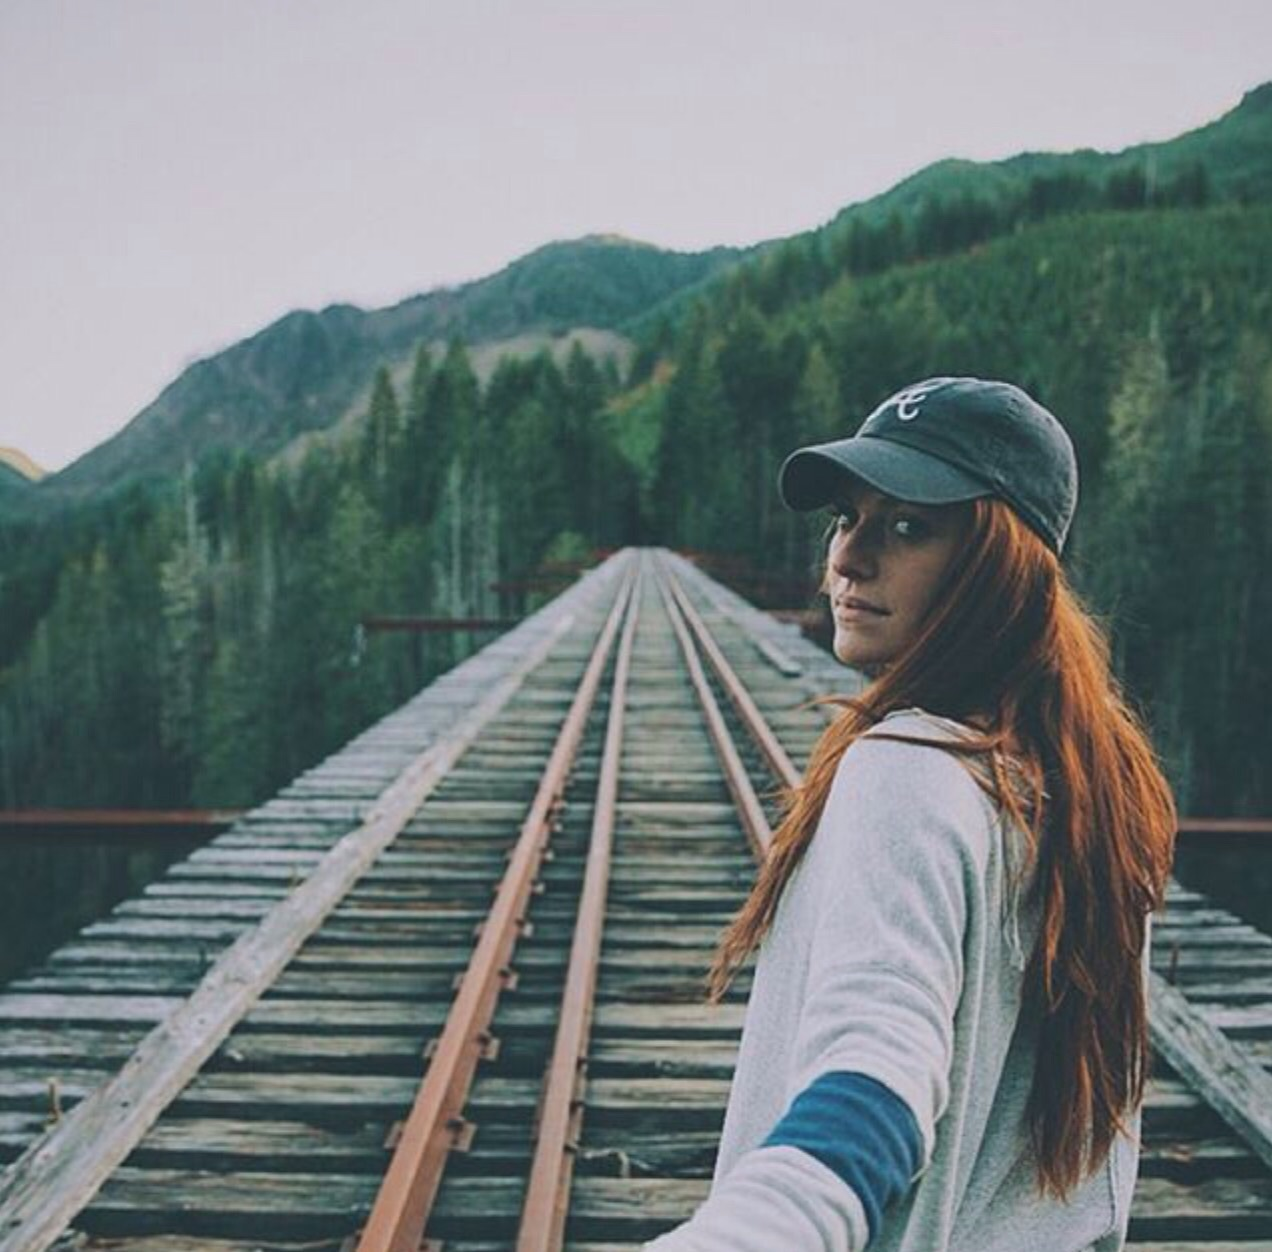 adidas, alone, beach, beaty, beautiful, blond, blonde, boho, brown, cool, couple, cute, fashion, forest, girl, girls, glamour, goals, grunge, hair, hipster, indie, luxury, nature, nike, ocean, outfit, photog, pretty, railway, sea, style, summer, sun